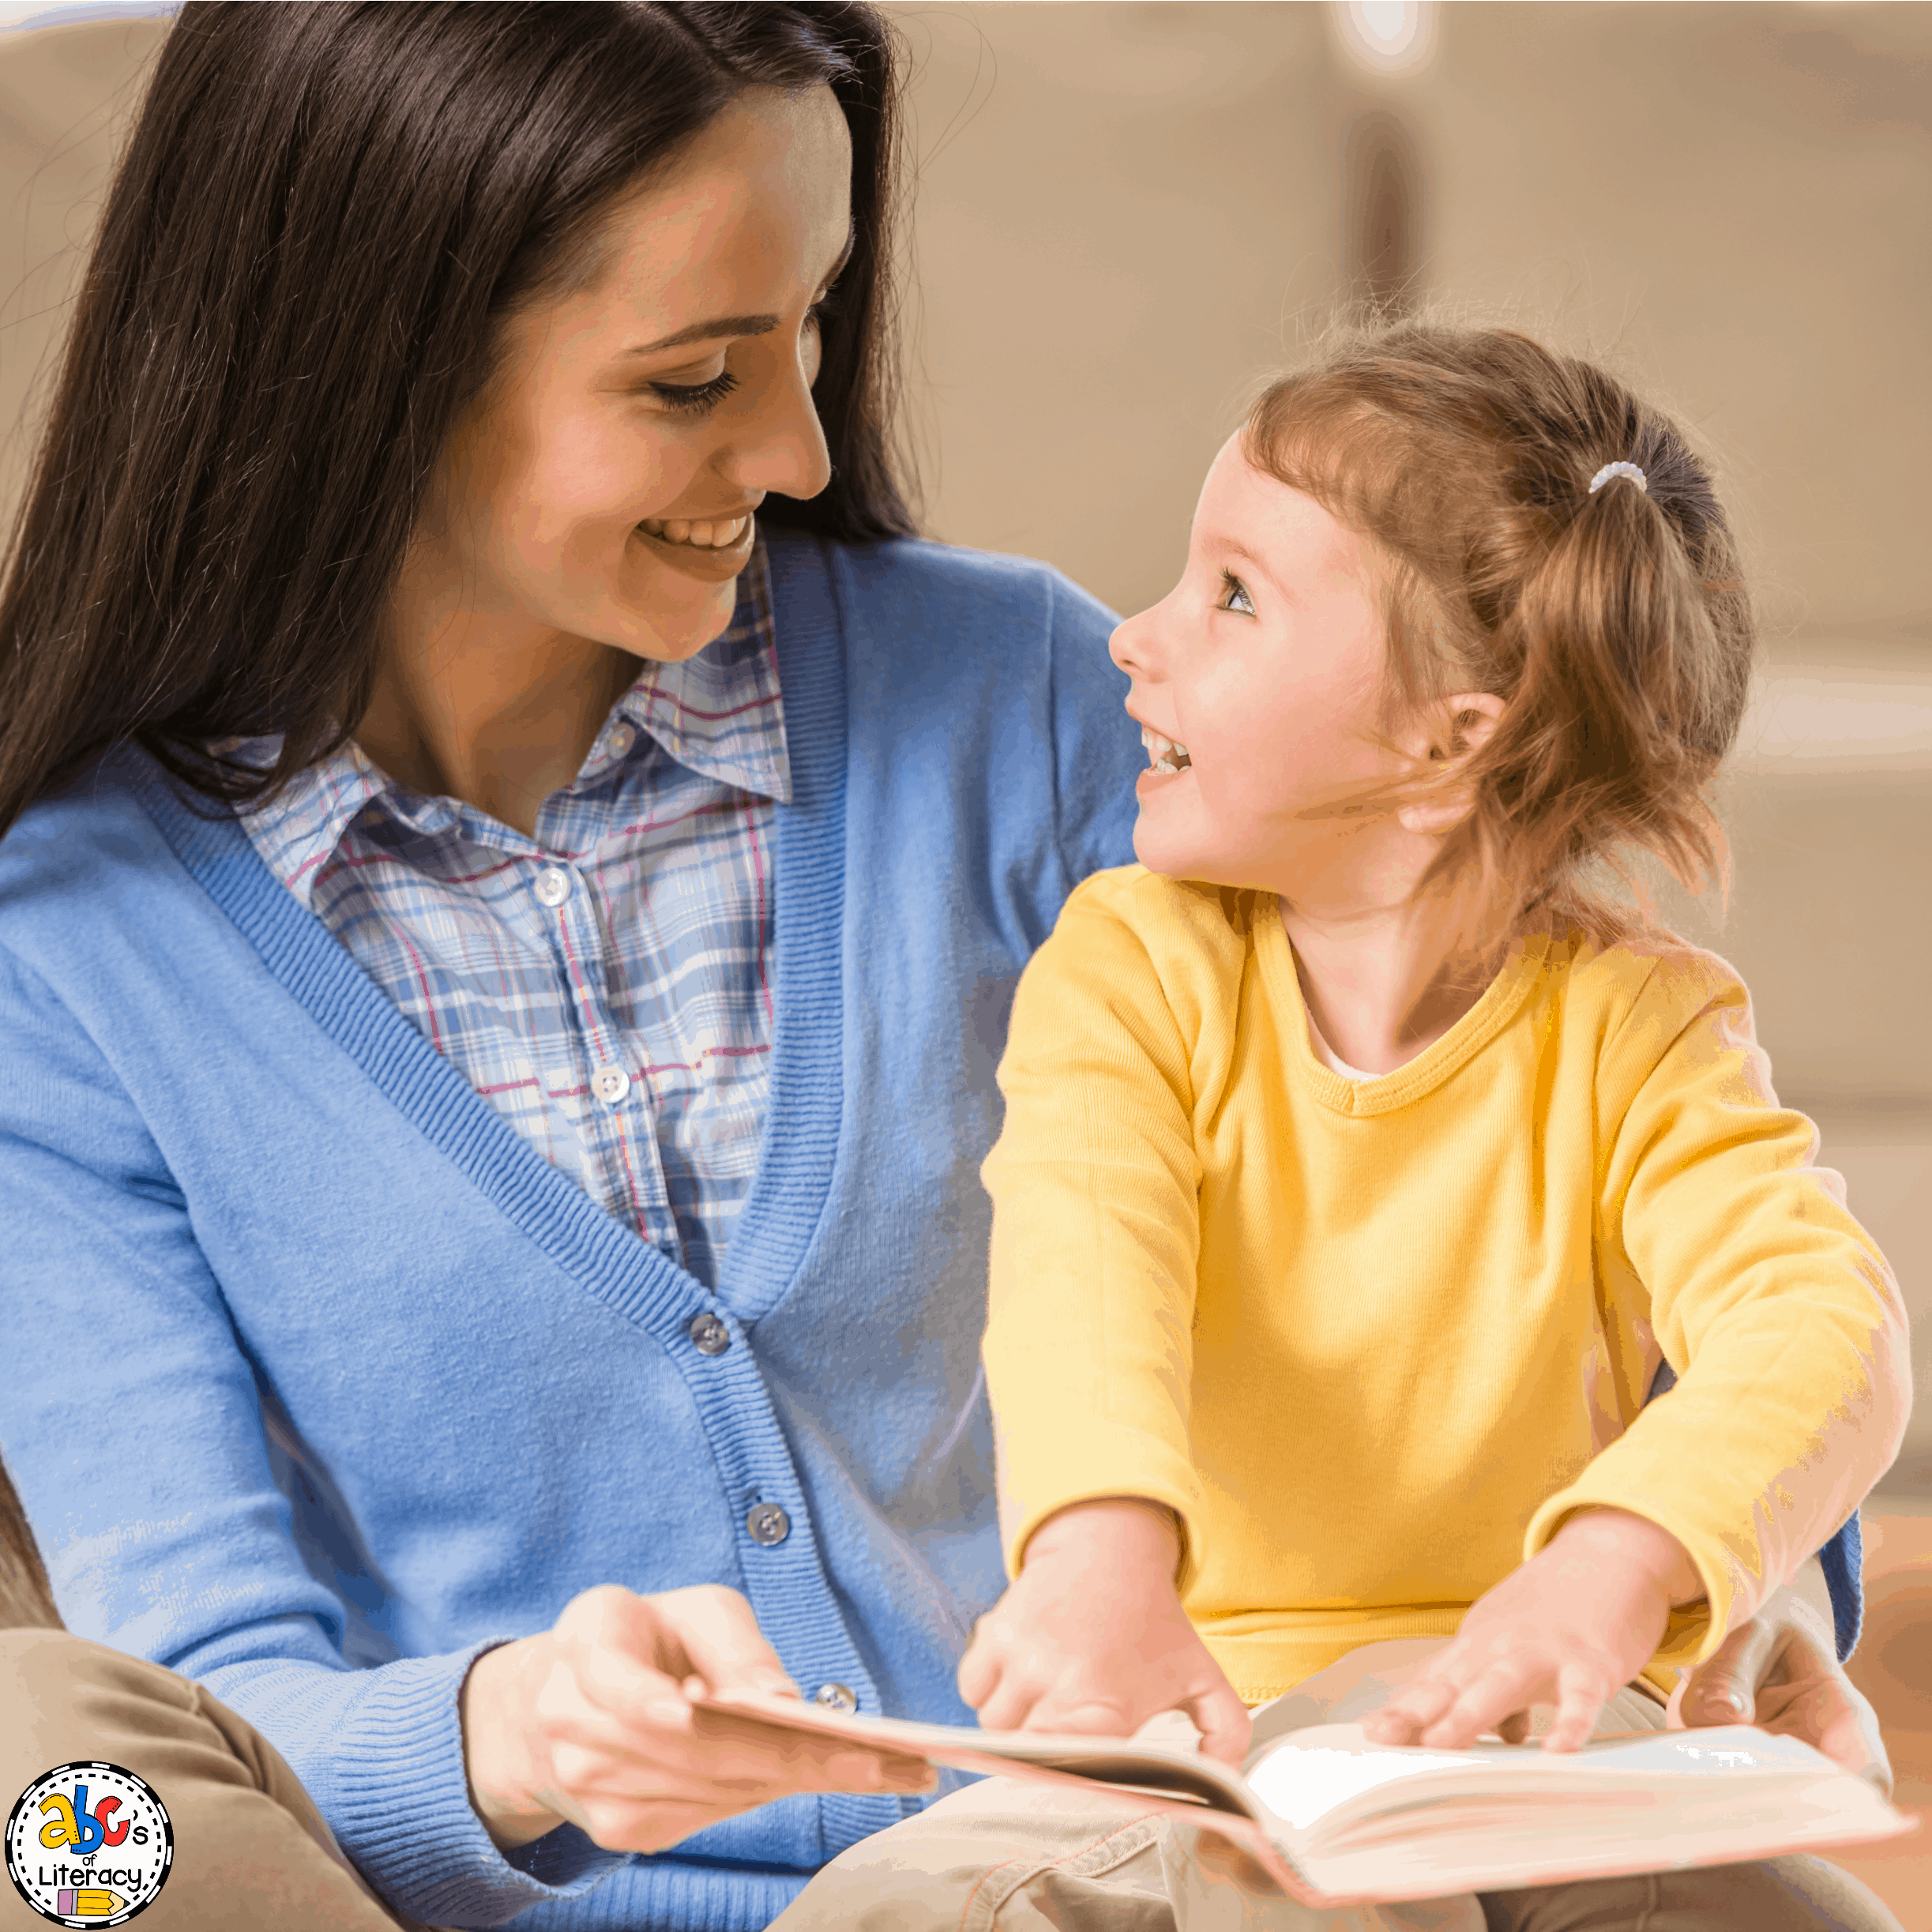 These Tips For Reading To Your Child are simple ways you can help your little one develop essential skills and become life-long learners.